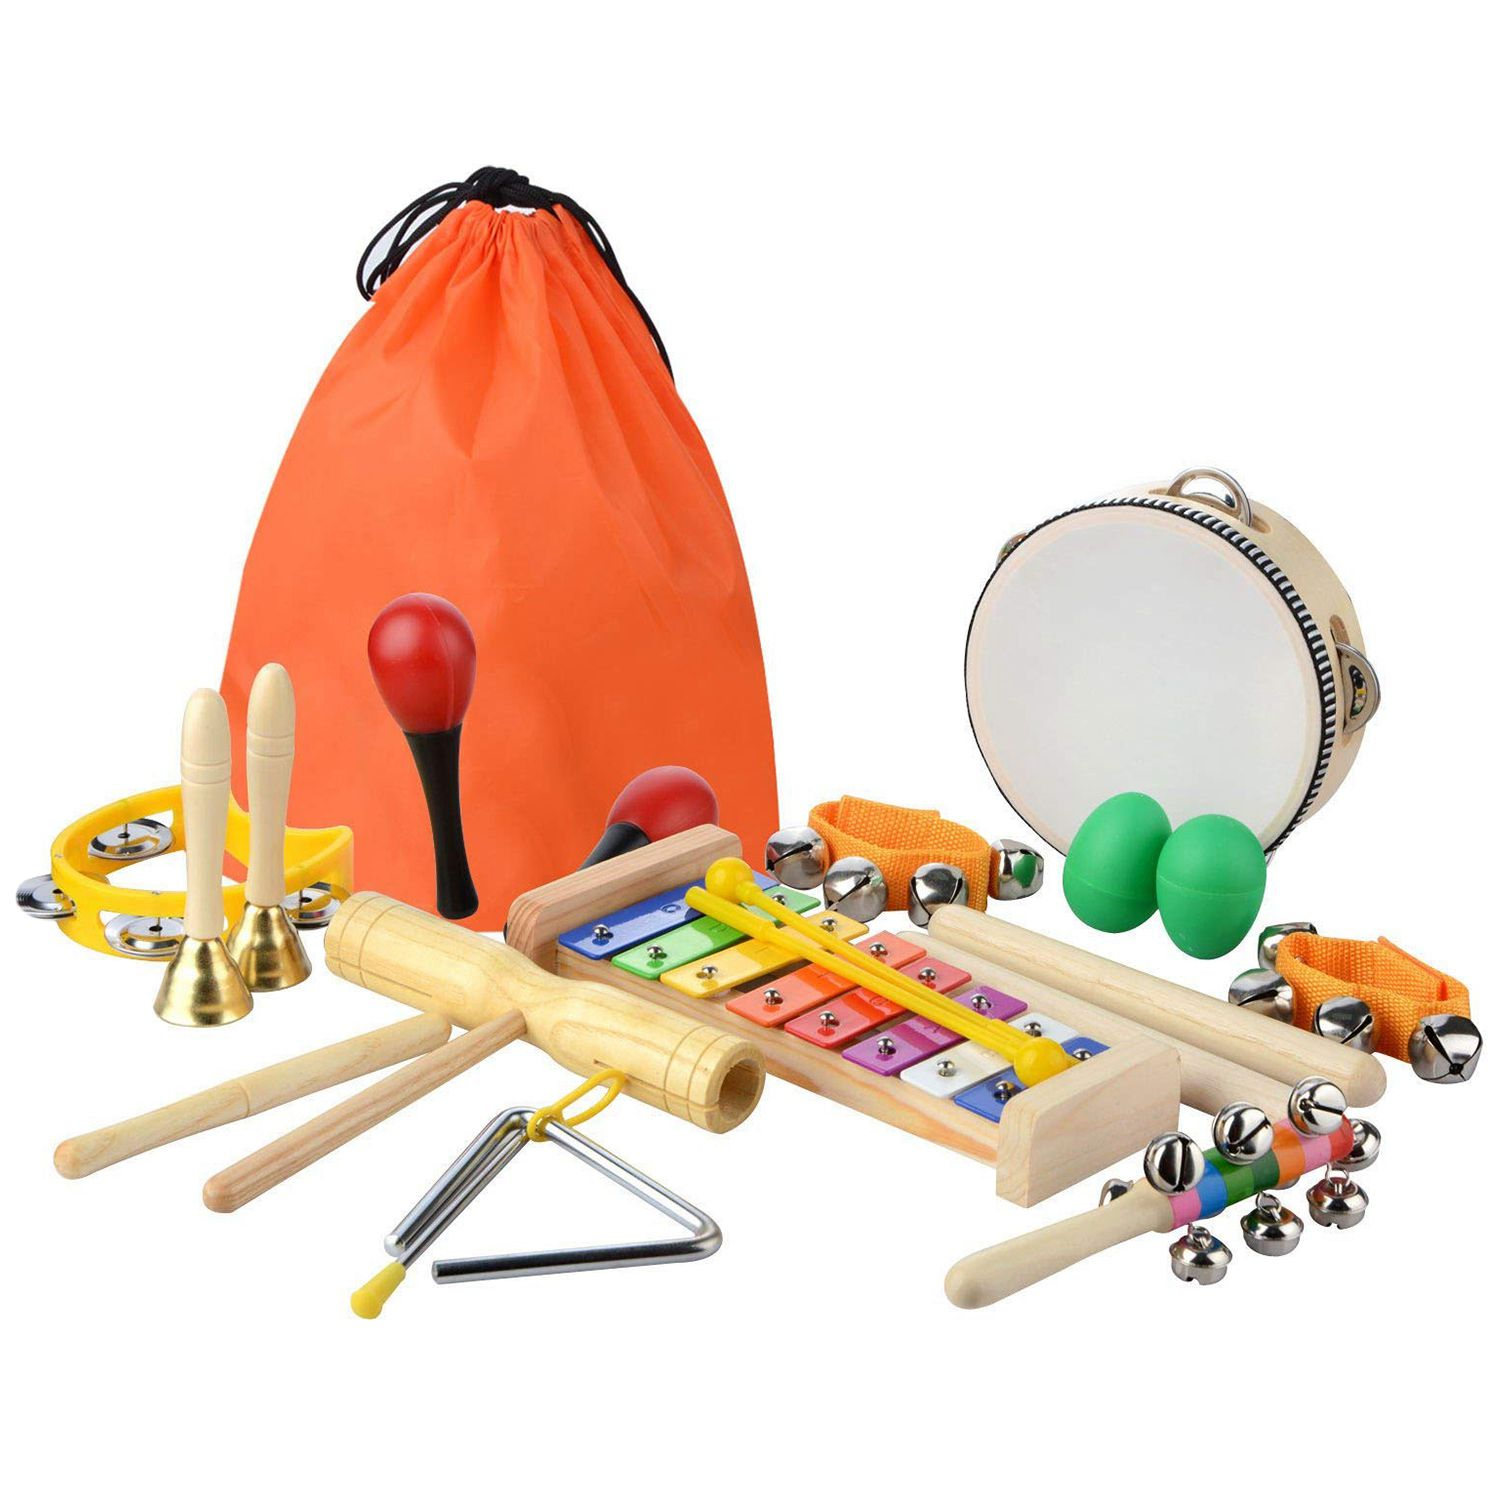 20 Pcs Toddler & Baby Musical Instruments Set - Percussion Toy Fun Toddlers Toys Wooden Xylophone Glockenspiel Toy Rhythm Band20 Pcs Toddler & Baby Musical Instruments Set - Percussion Toy Fun Toddlers Toys Wooden Xylophone Glockenspiel Toy Rhythm Band